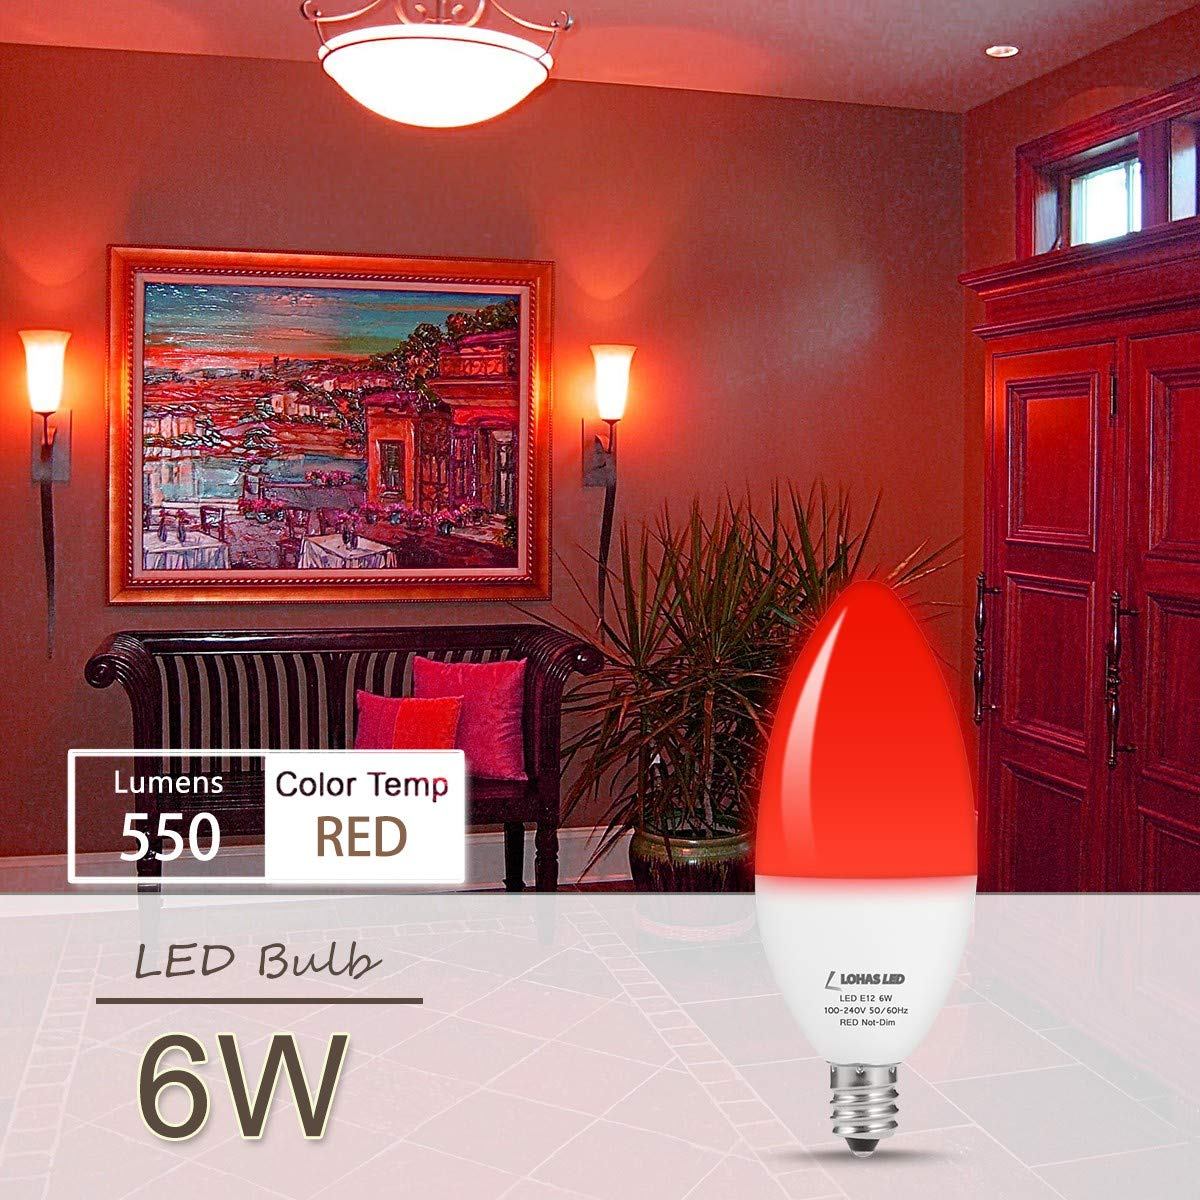 Decorative Christmas Lighting Candle Lights for Chandelier Red Glow 6Watt LED Bulb 60W Equivalent LOHAS Red Light Bulb Candelabra Base E12 550 Lumen 4 Pack Not Dimmable